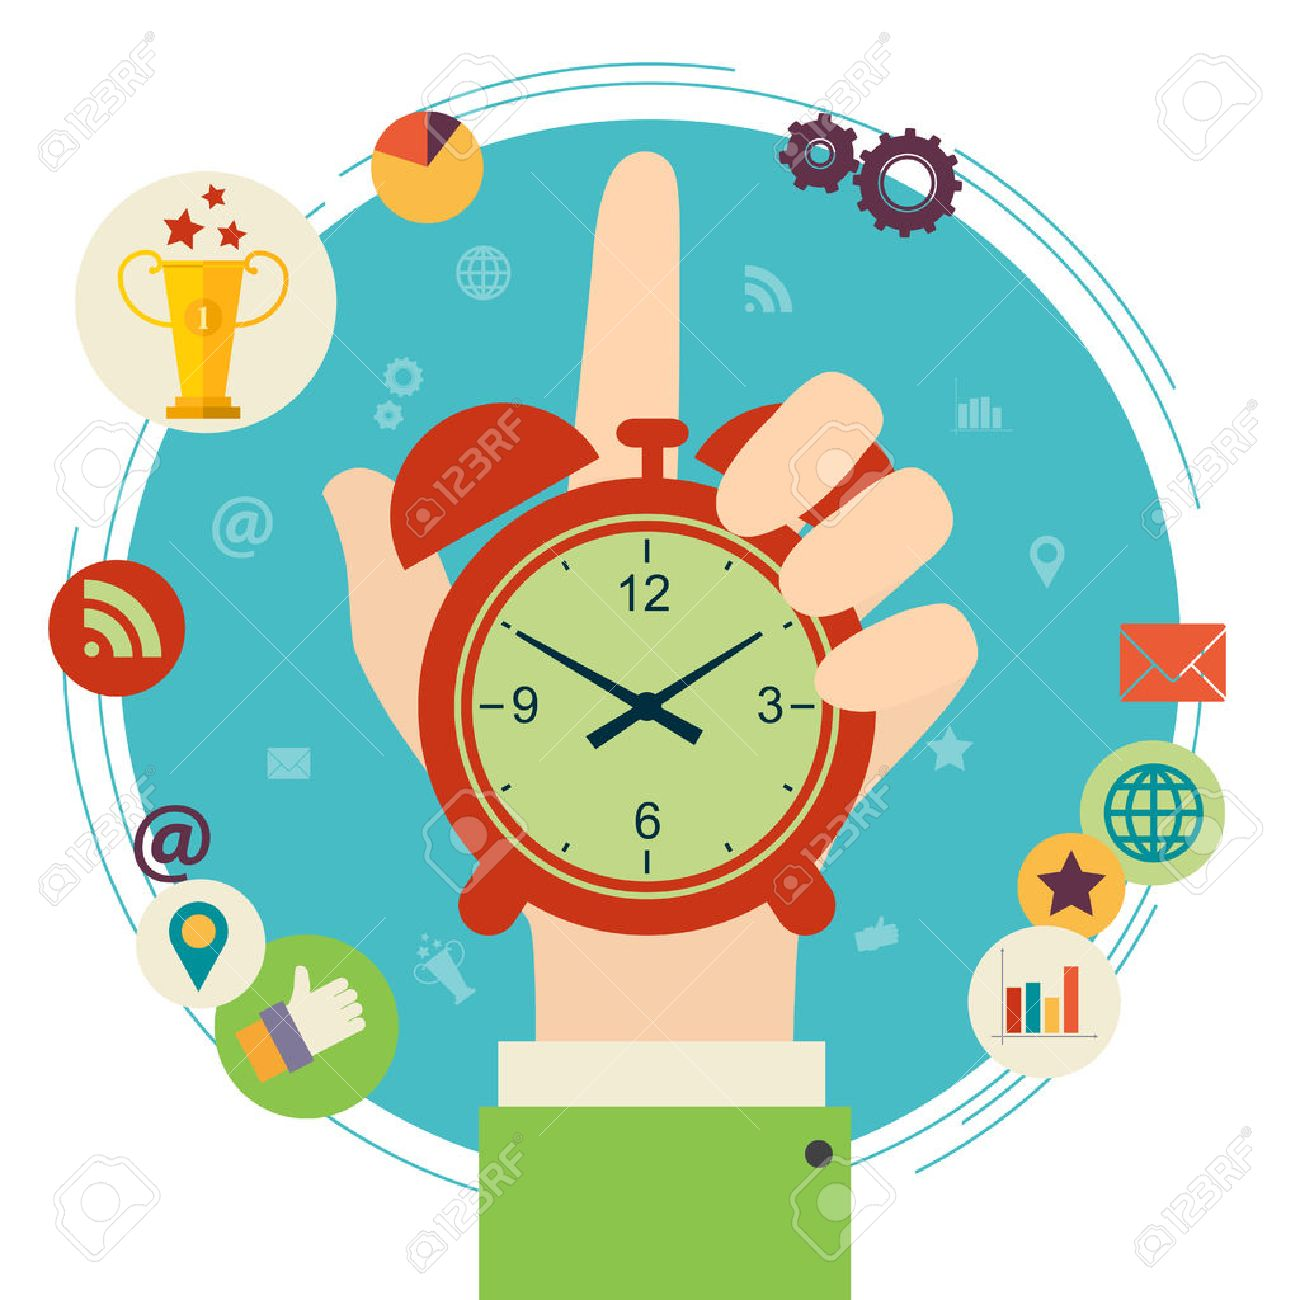 11812 Time free clipart.